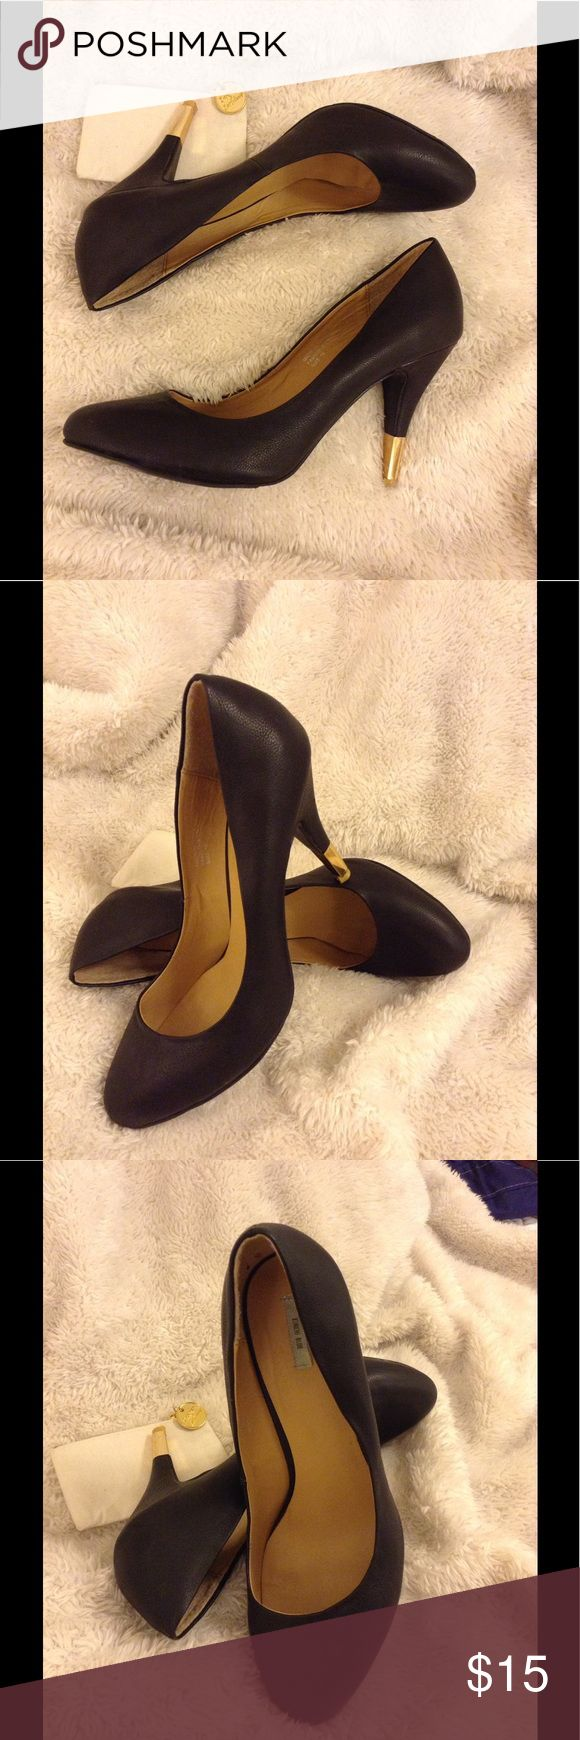 Urban outfitters Black Heals In good pre owned condition. Only worn a few times and very comfortable heels. Size 10 Urban Outfitters Shoes Heels